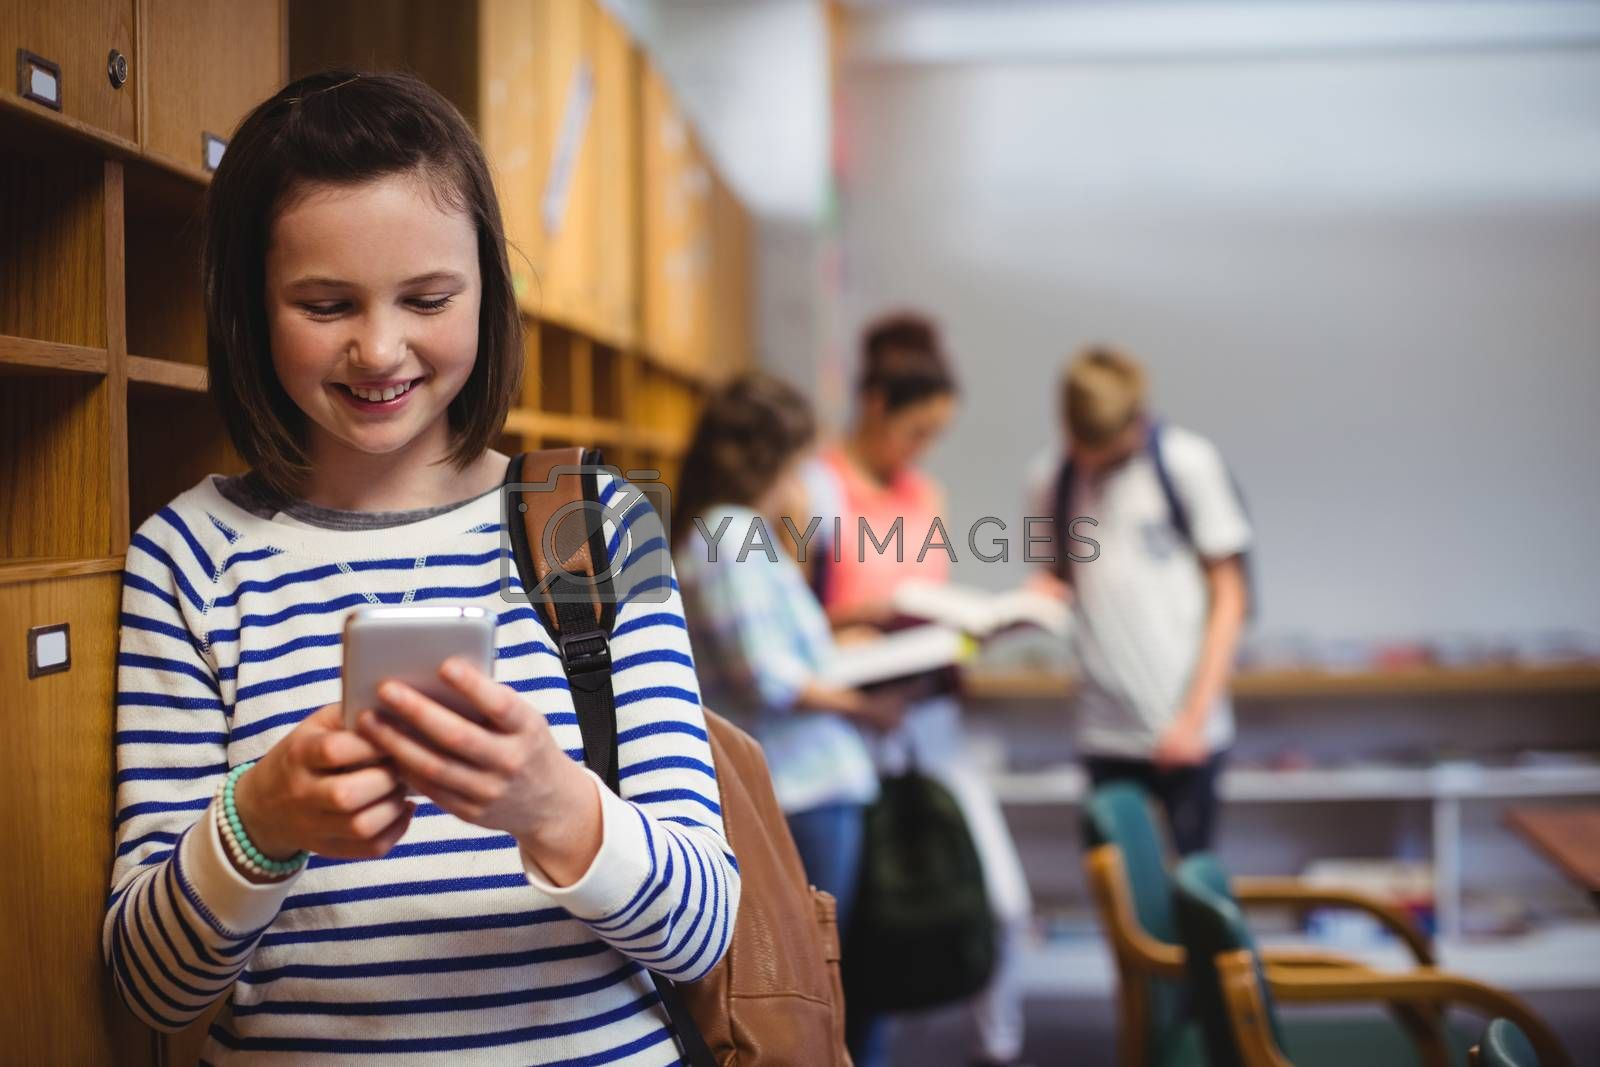 Happy schoolgirl using mobile phone in locker room at school